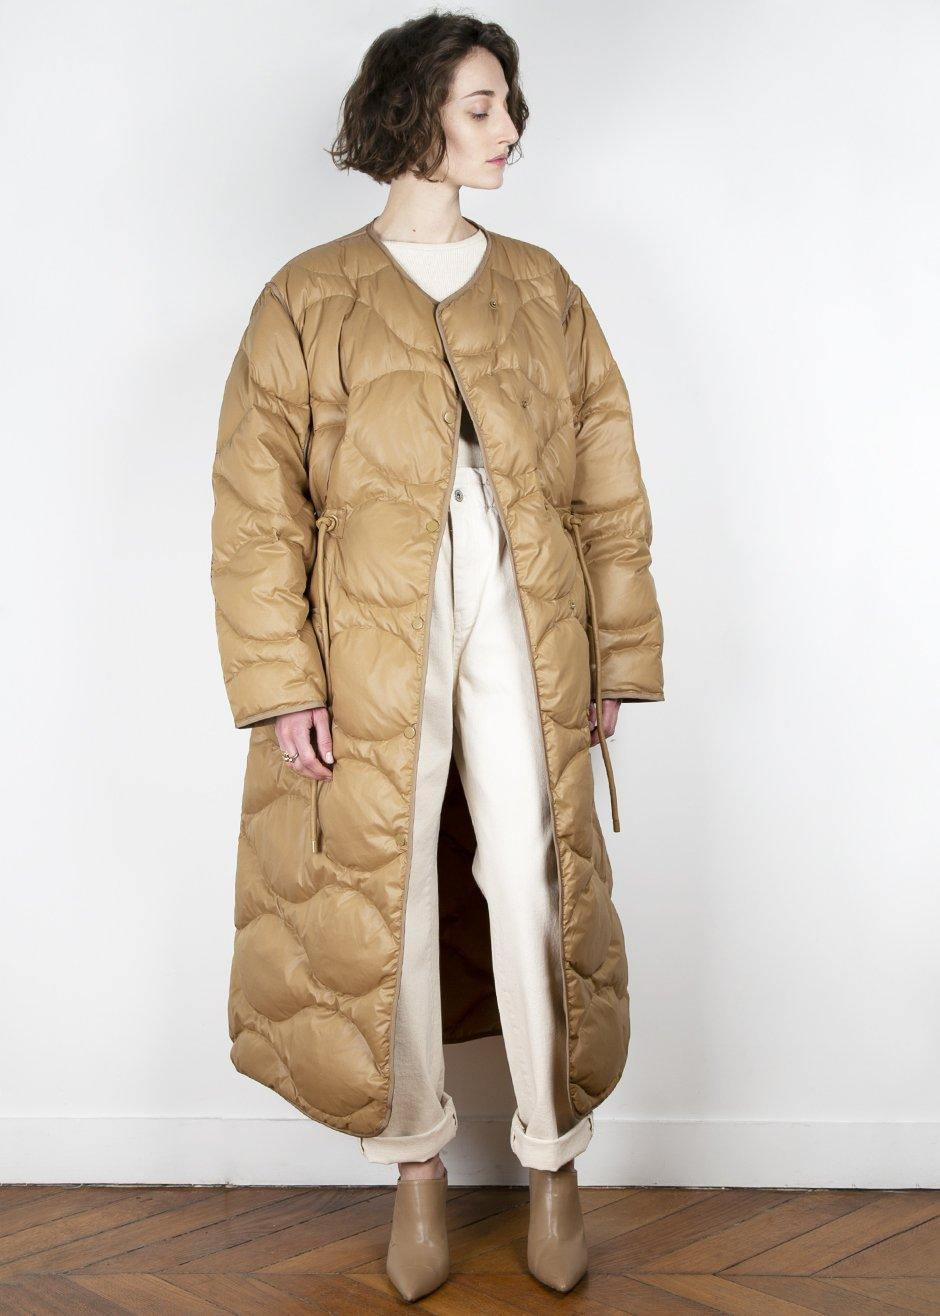 """<br><br><strong>The Frankie Shop</strong> Collarless Tan Quilted Nylon Coat, $, available at <a href=""""https://thefrankieshop.com/collections/outerwear/products/collarless-tan-quilted-nylon-coat"""" rel=""""nofollow noopener"""" target=""""_blank"""" data-ylk=""""slk:The Frankie Shop"""" class=""""link rapid-noclick-resp"""">The Frankie Shop</a>"""